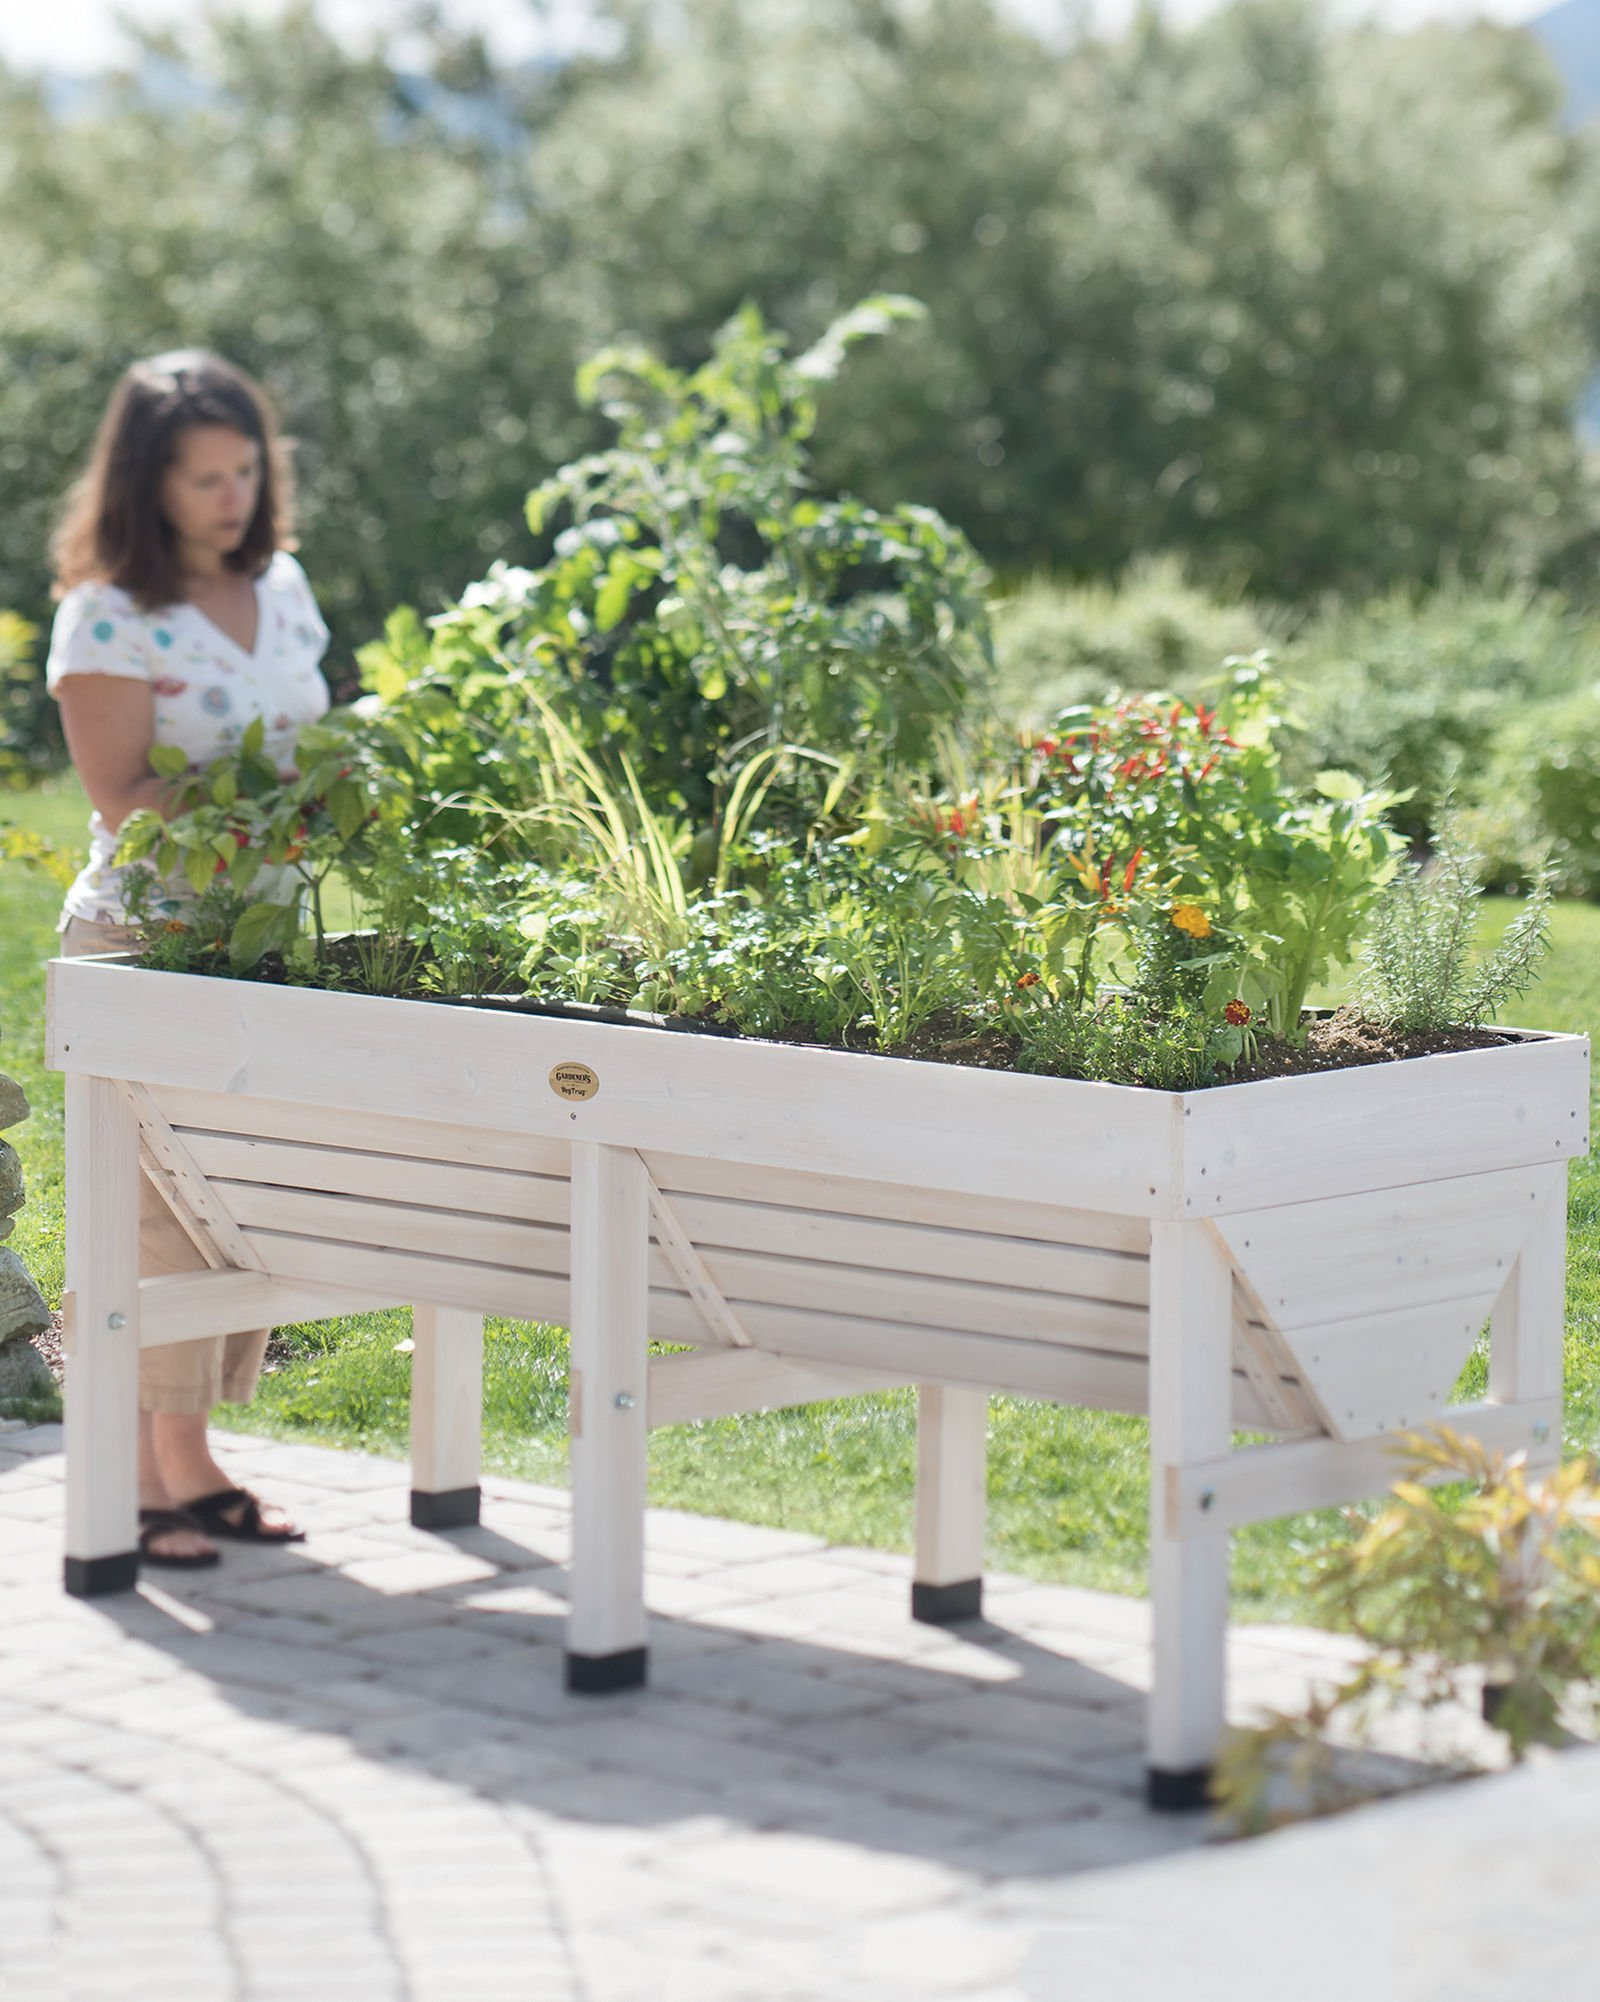 VegTrug8482; Patio Garden with Covers, Whitewash by Gardener's Supply Company